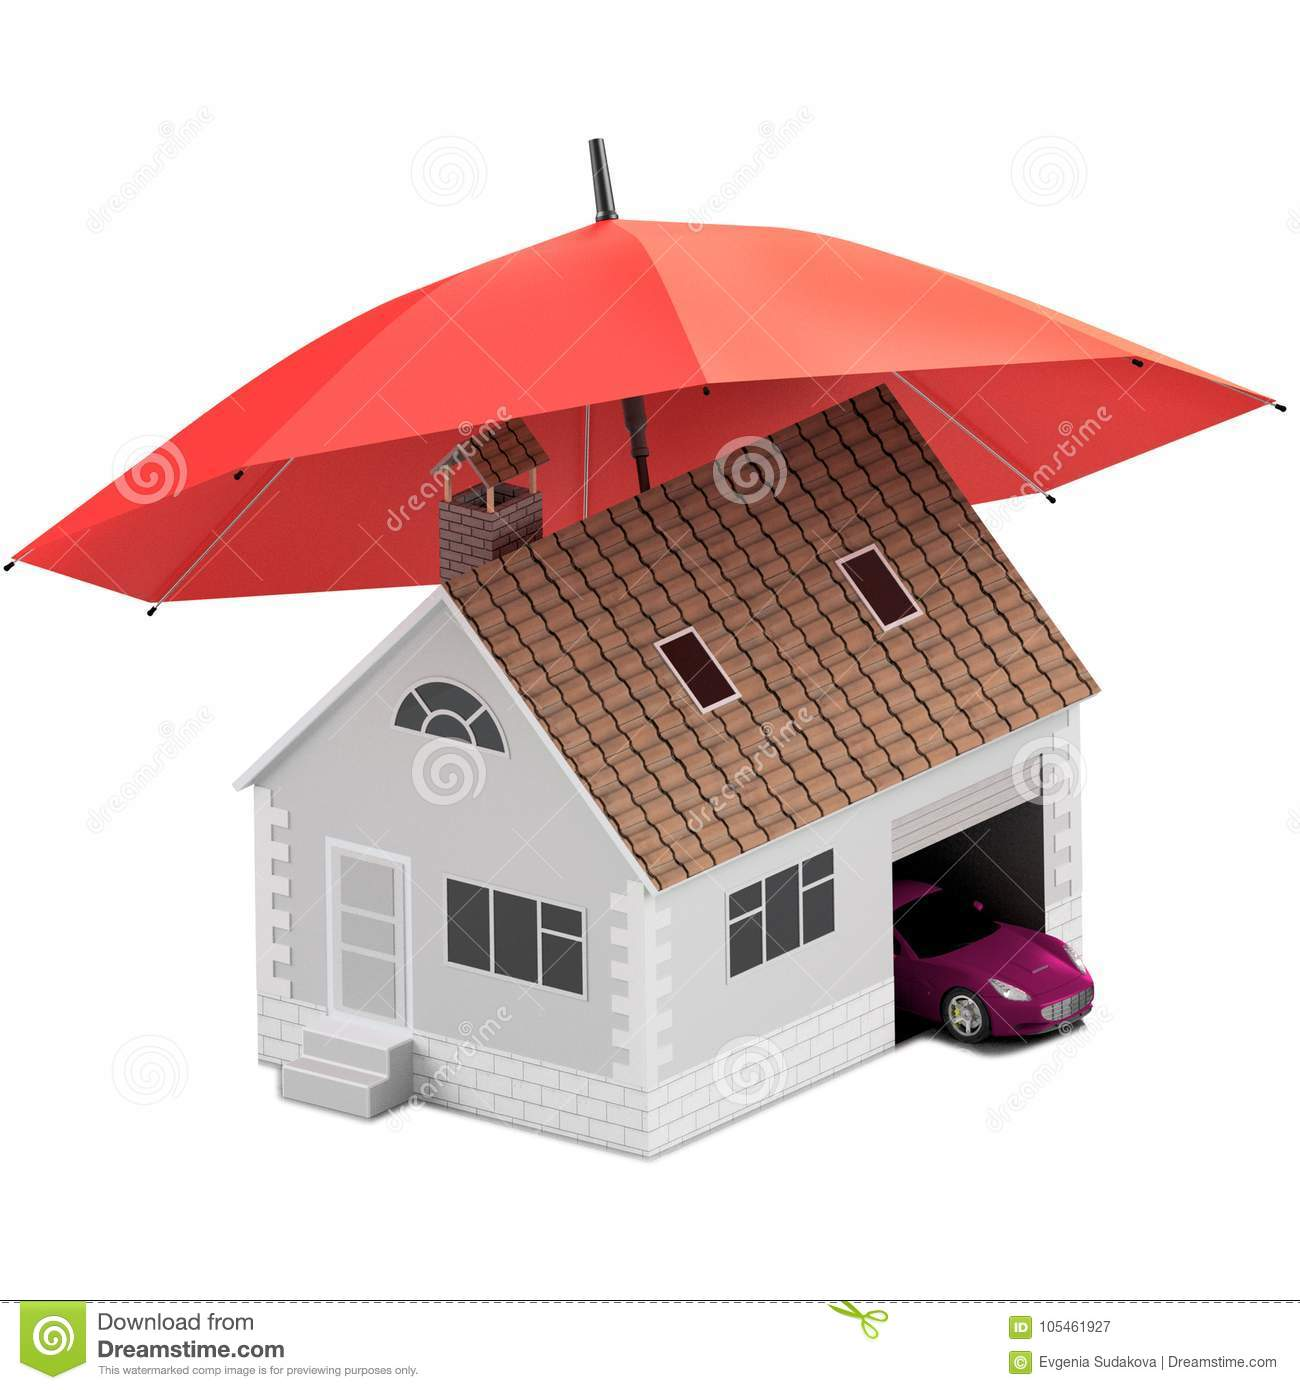 Home insurance when buying a protect